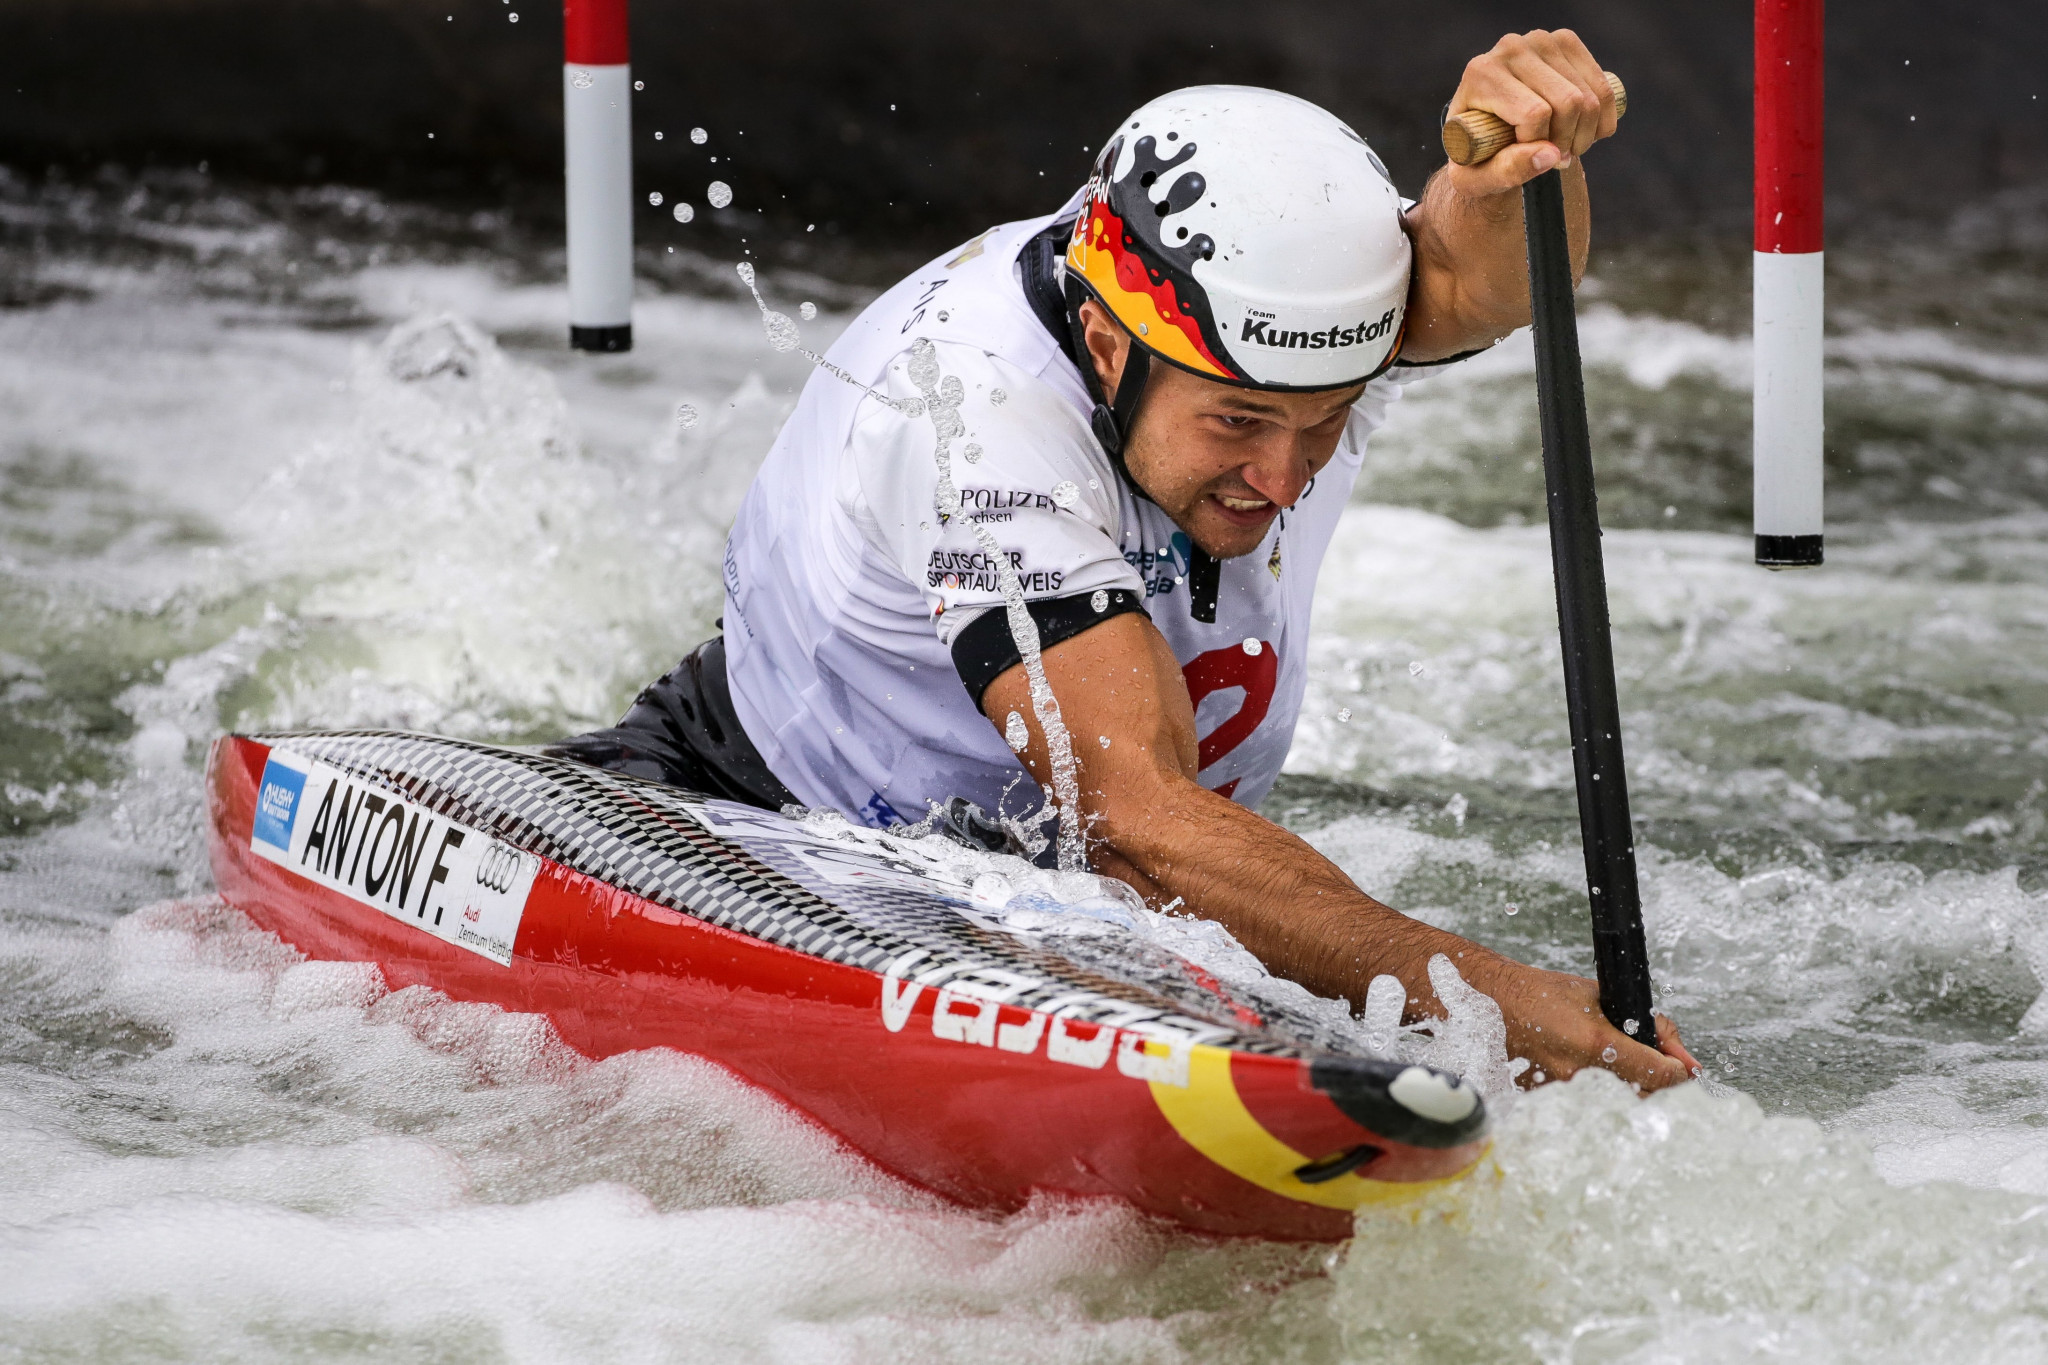 Germany's world champion Franz Anton triumphed in the men's C1 event ©Paddle Australia